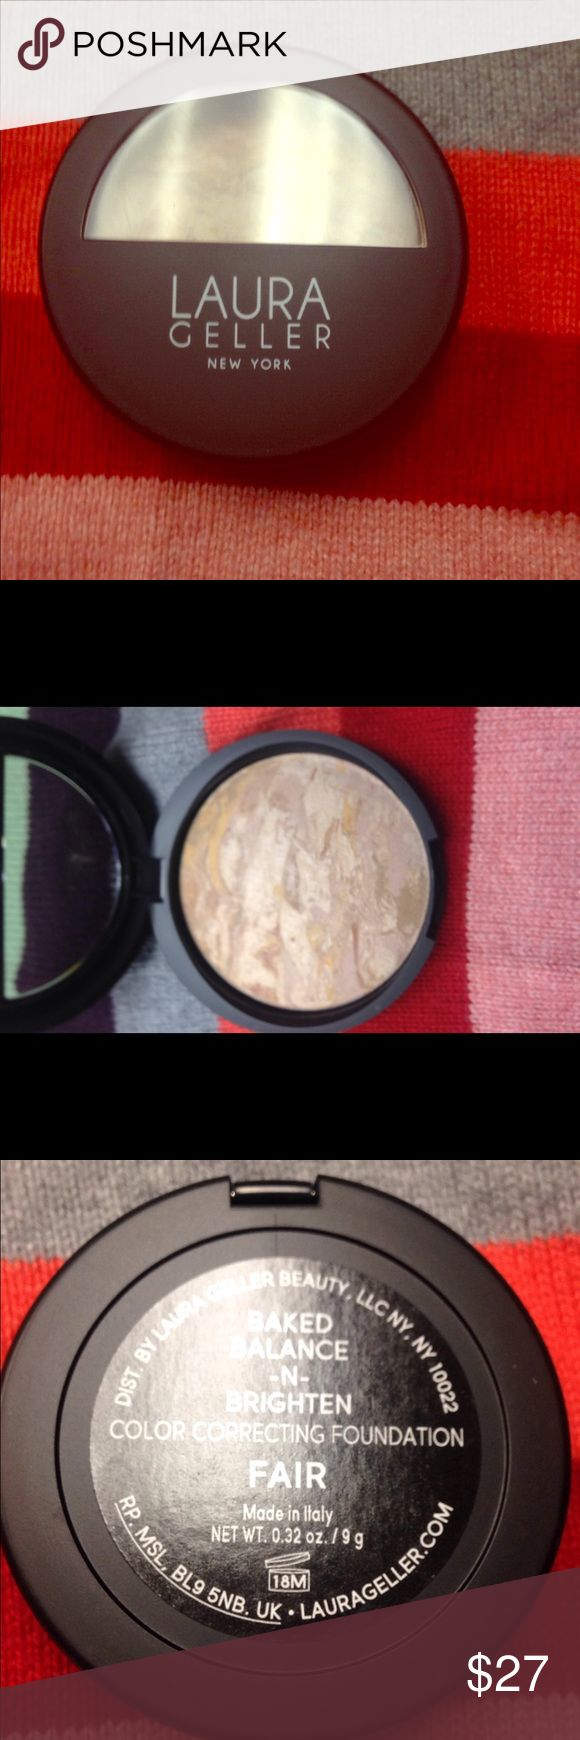 Laura Geller Foundation Laura Geller Baked Balance-N-Brighten Foundation in Fair. Full Size. Brand new, never used. Bundle and save!! Laura Geller Makeup Foundation